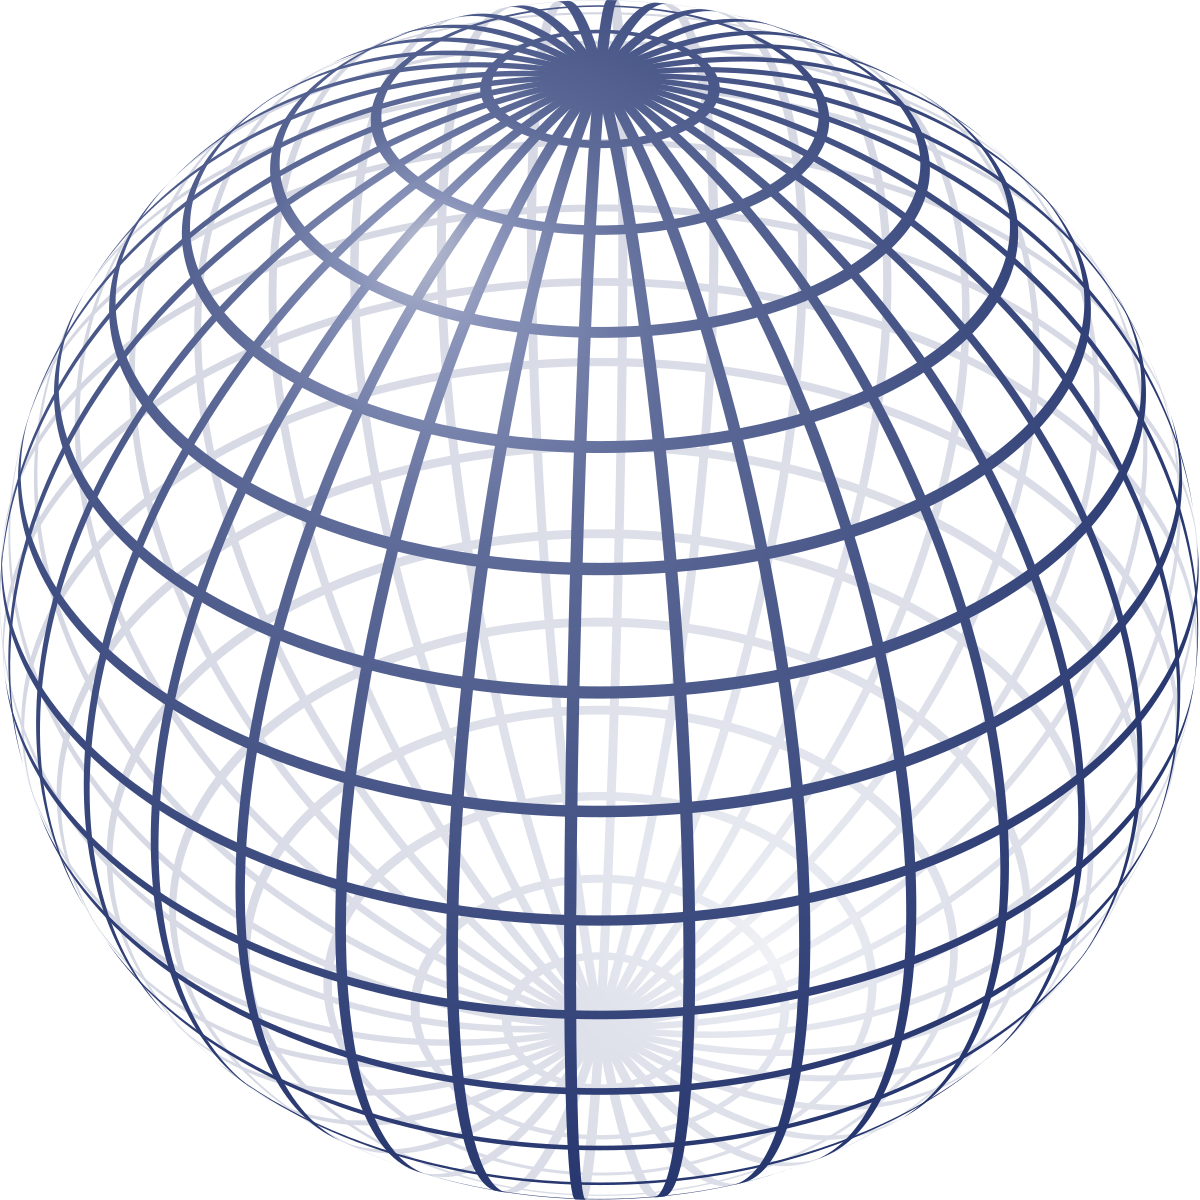 Geometric sphere png. Wikipedia